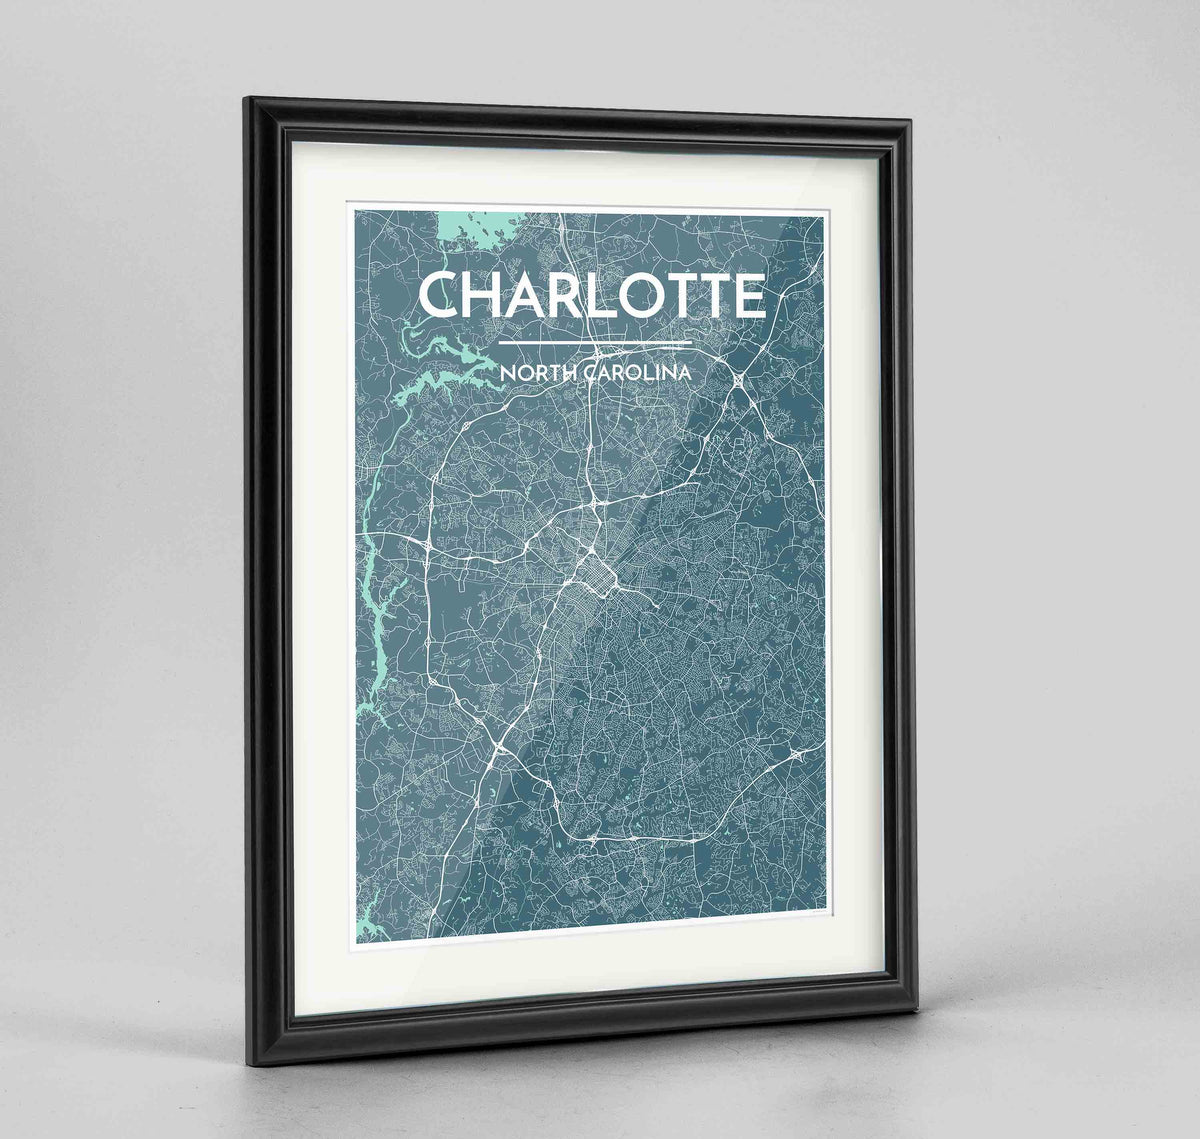 "Framed Charlotte Map Art Print 24x36"" Traditional Black frame Point Two Design Group"